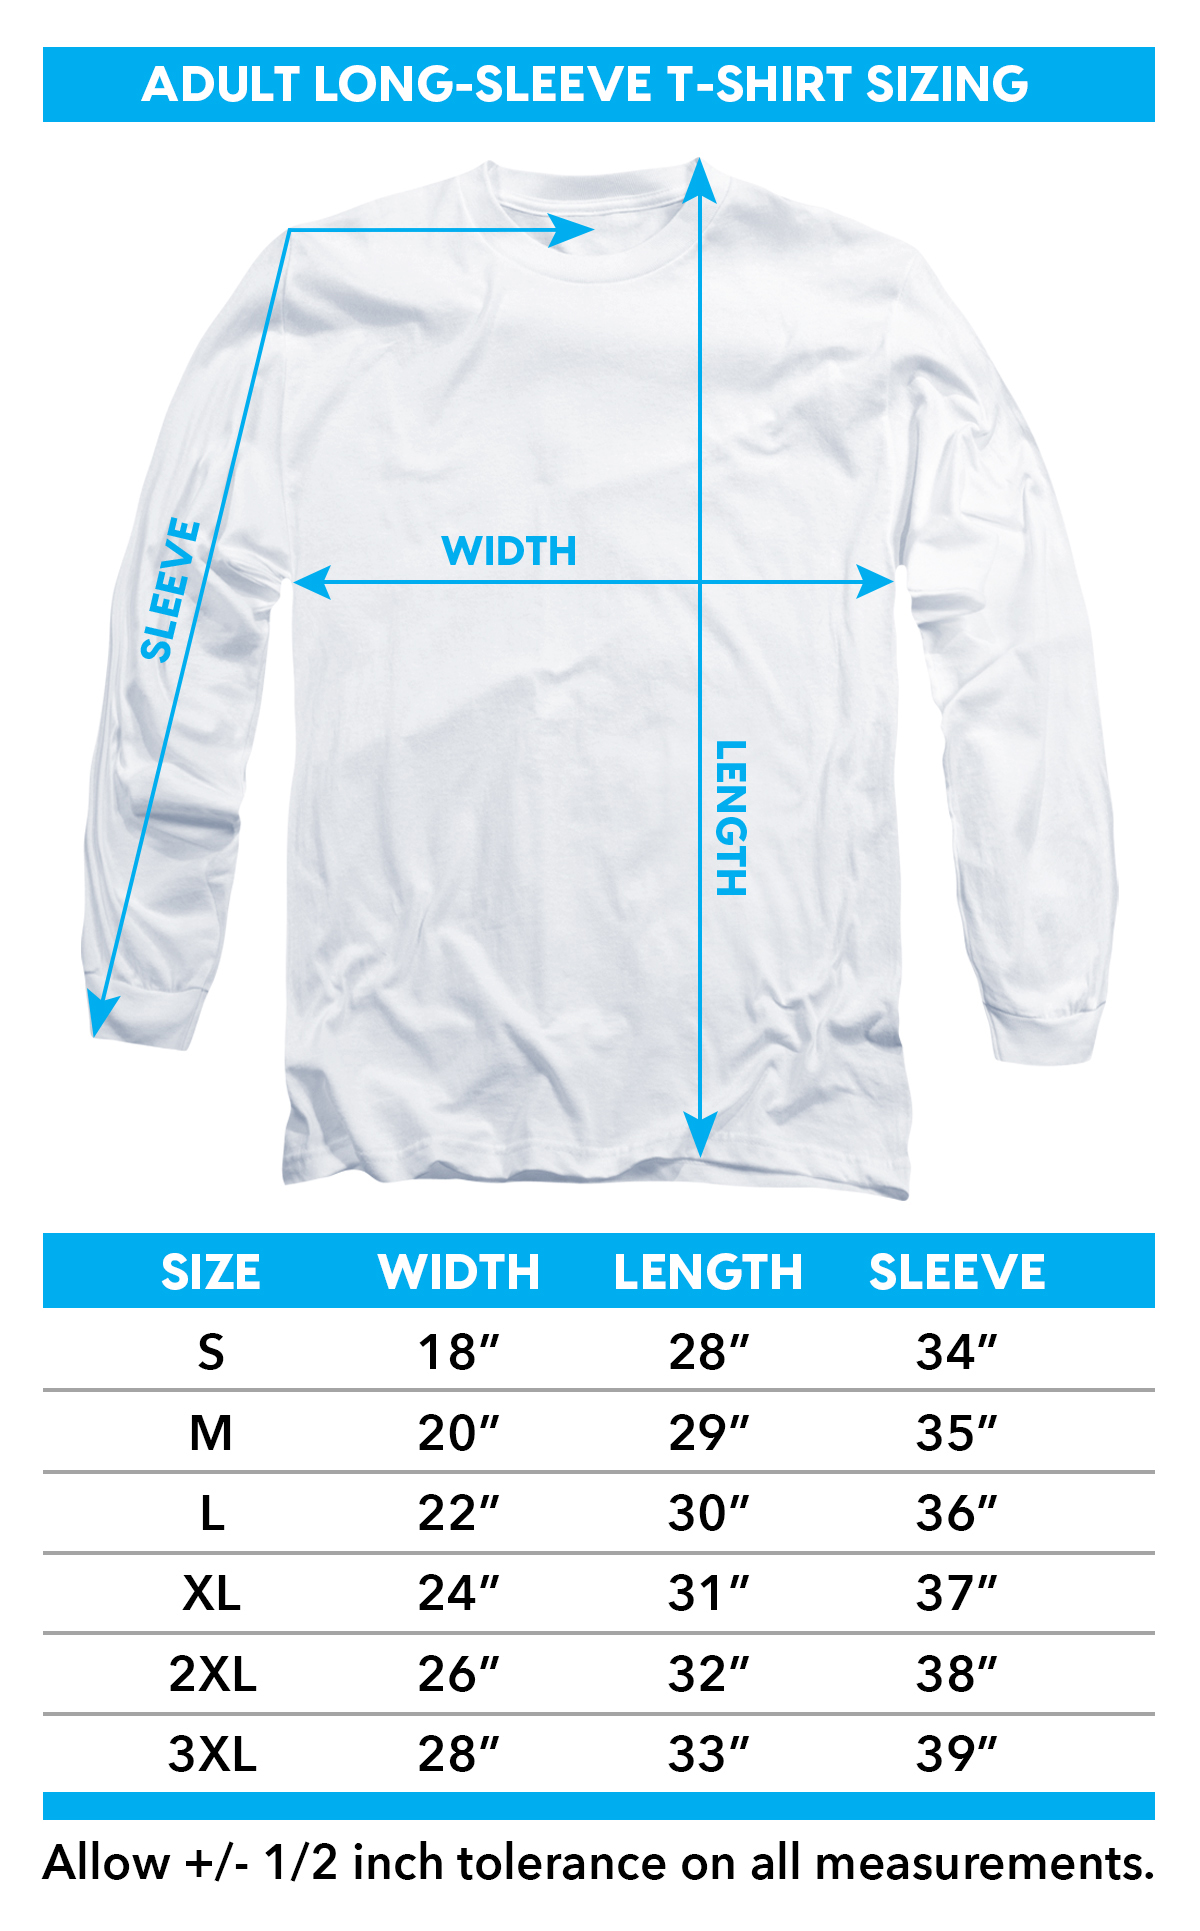 Sizing chart for Wargames Long Sleeve Shirt - Game Board  TRV-MGM309-AL